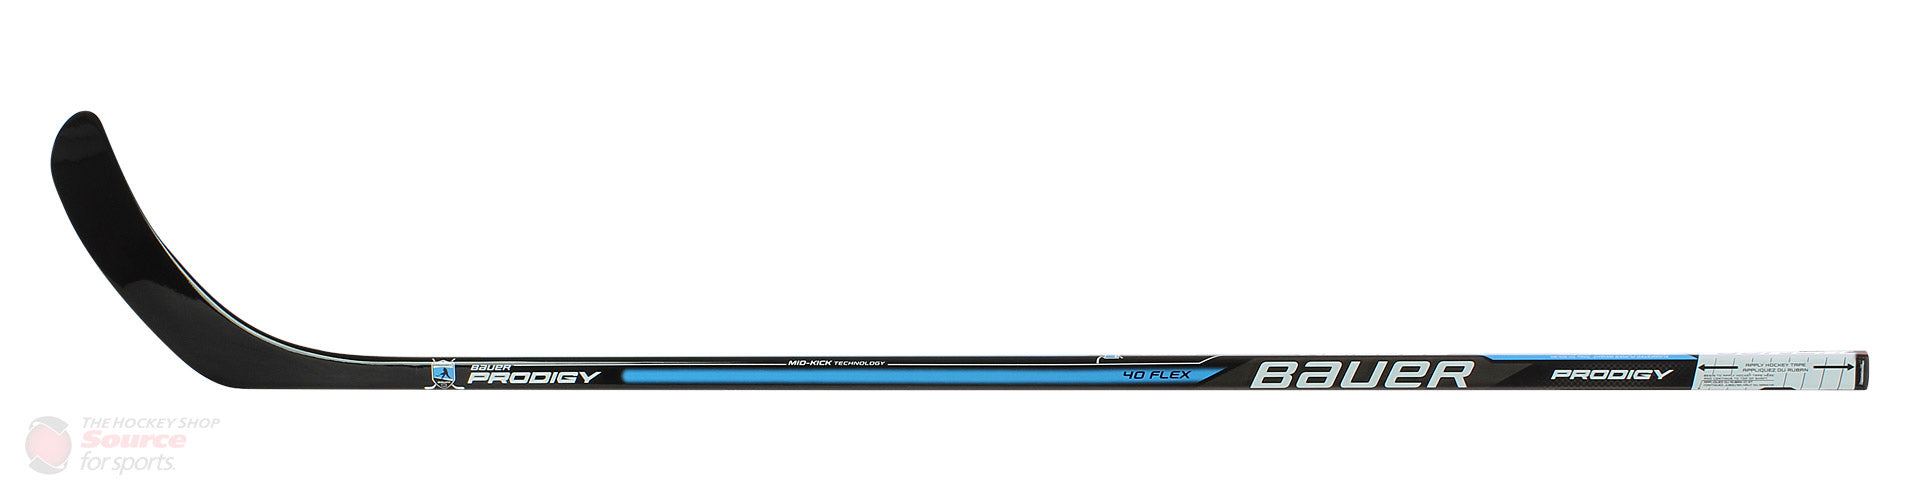 Bauer Prodigy Sticks